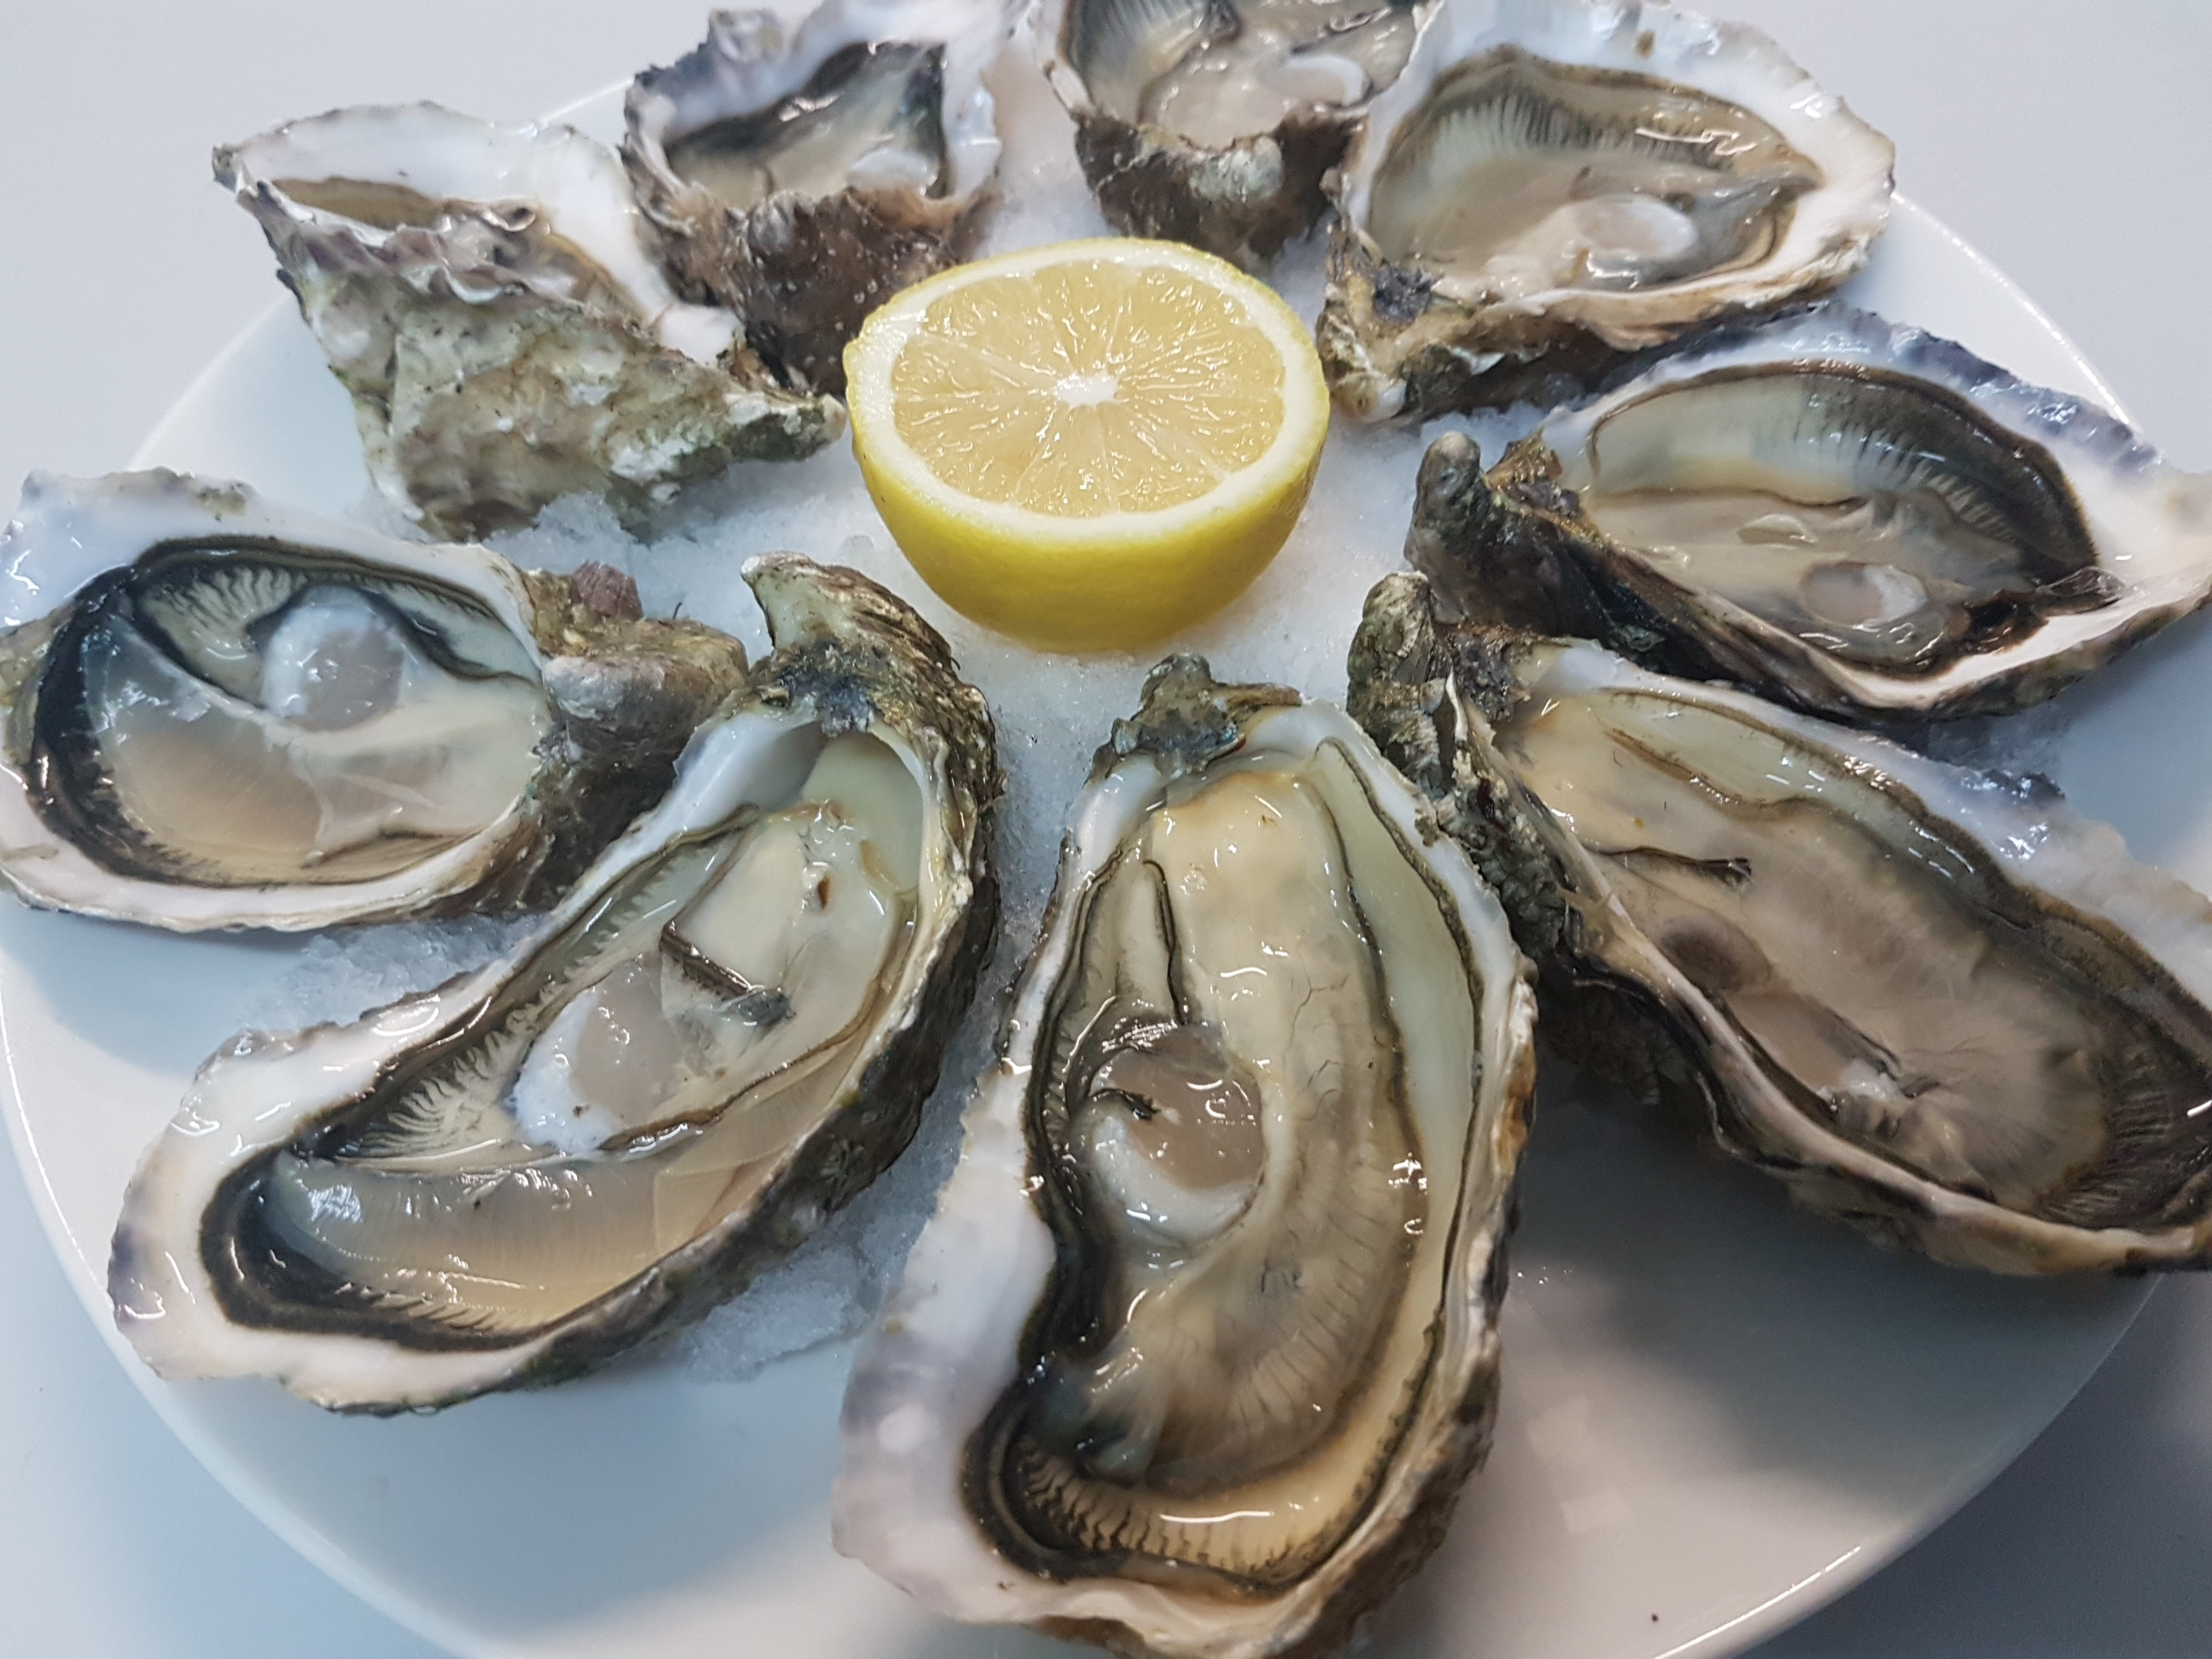 Oceanus-World oysters